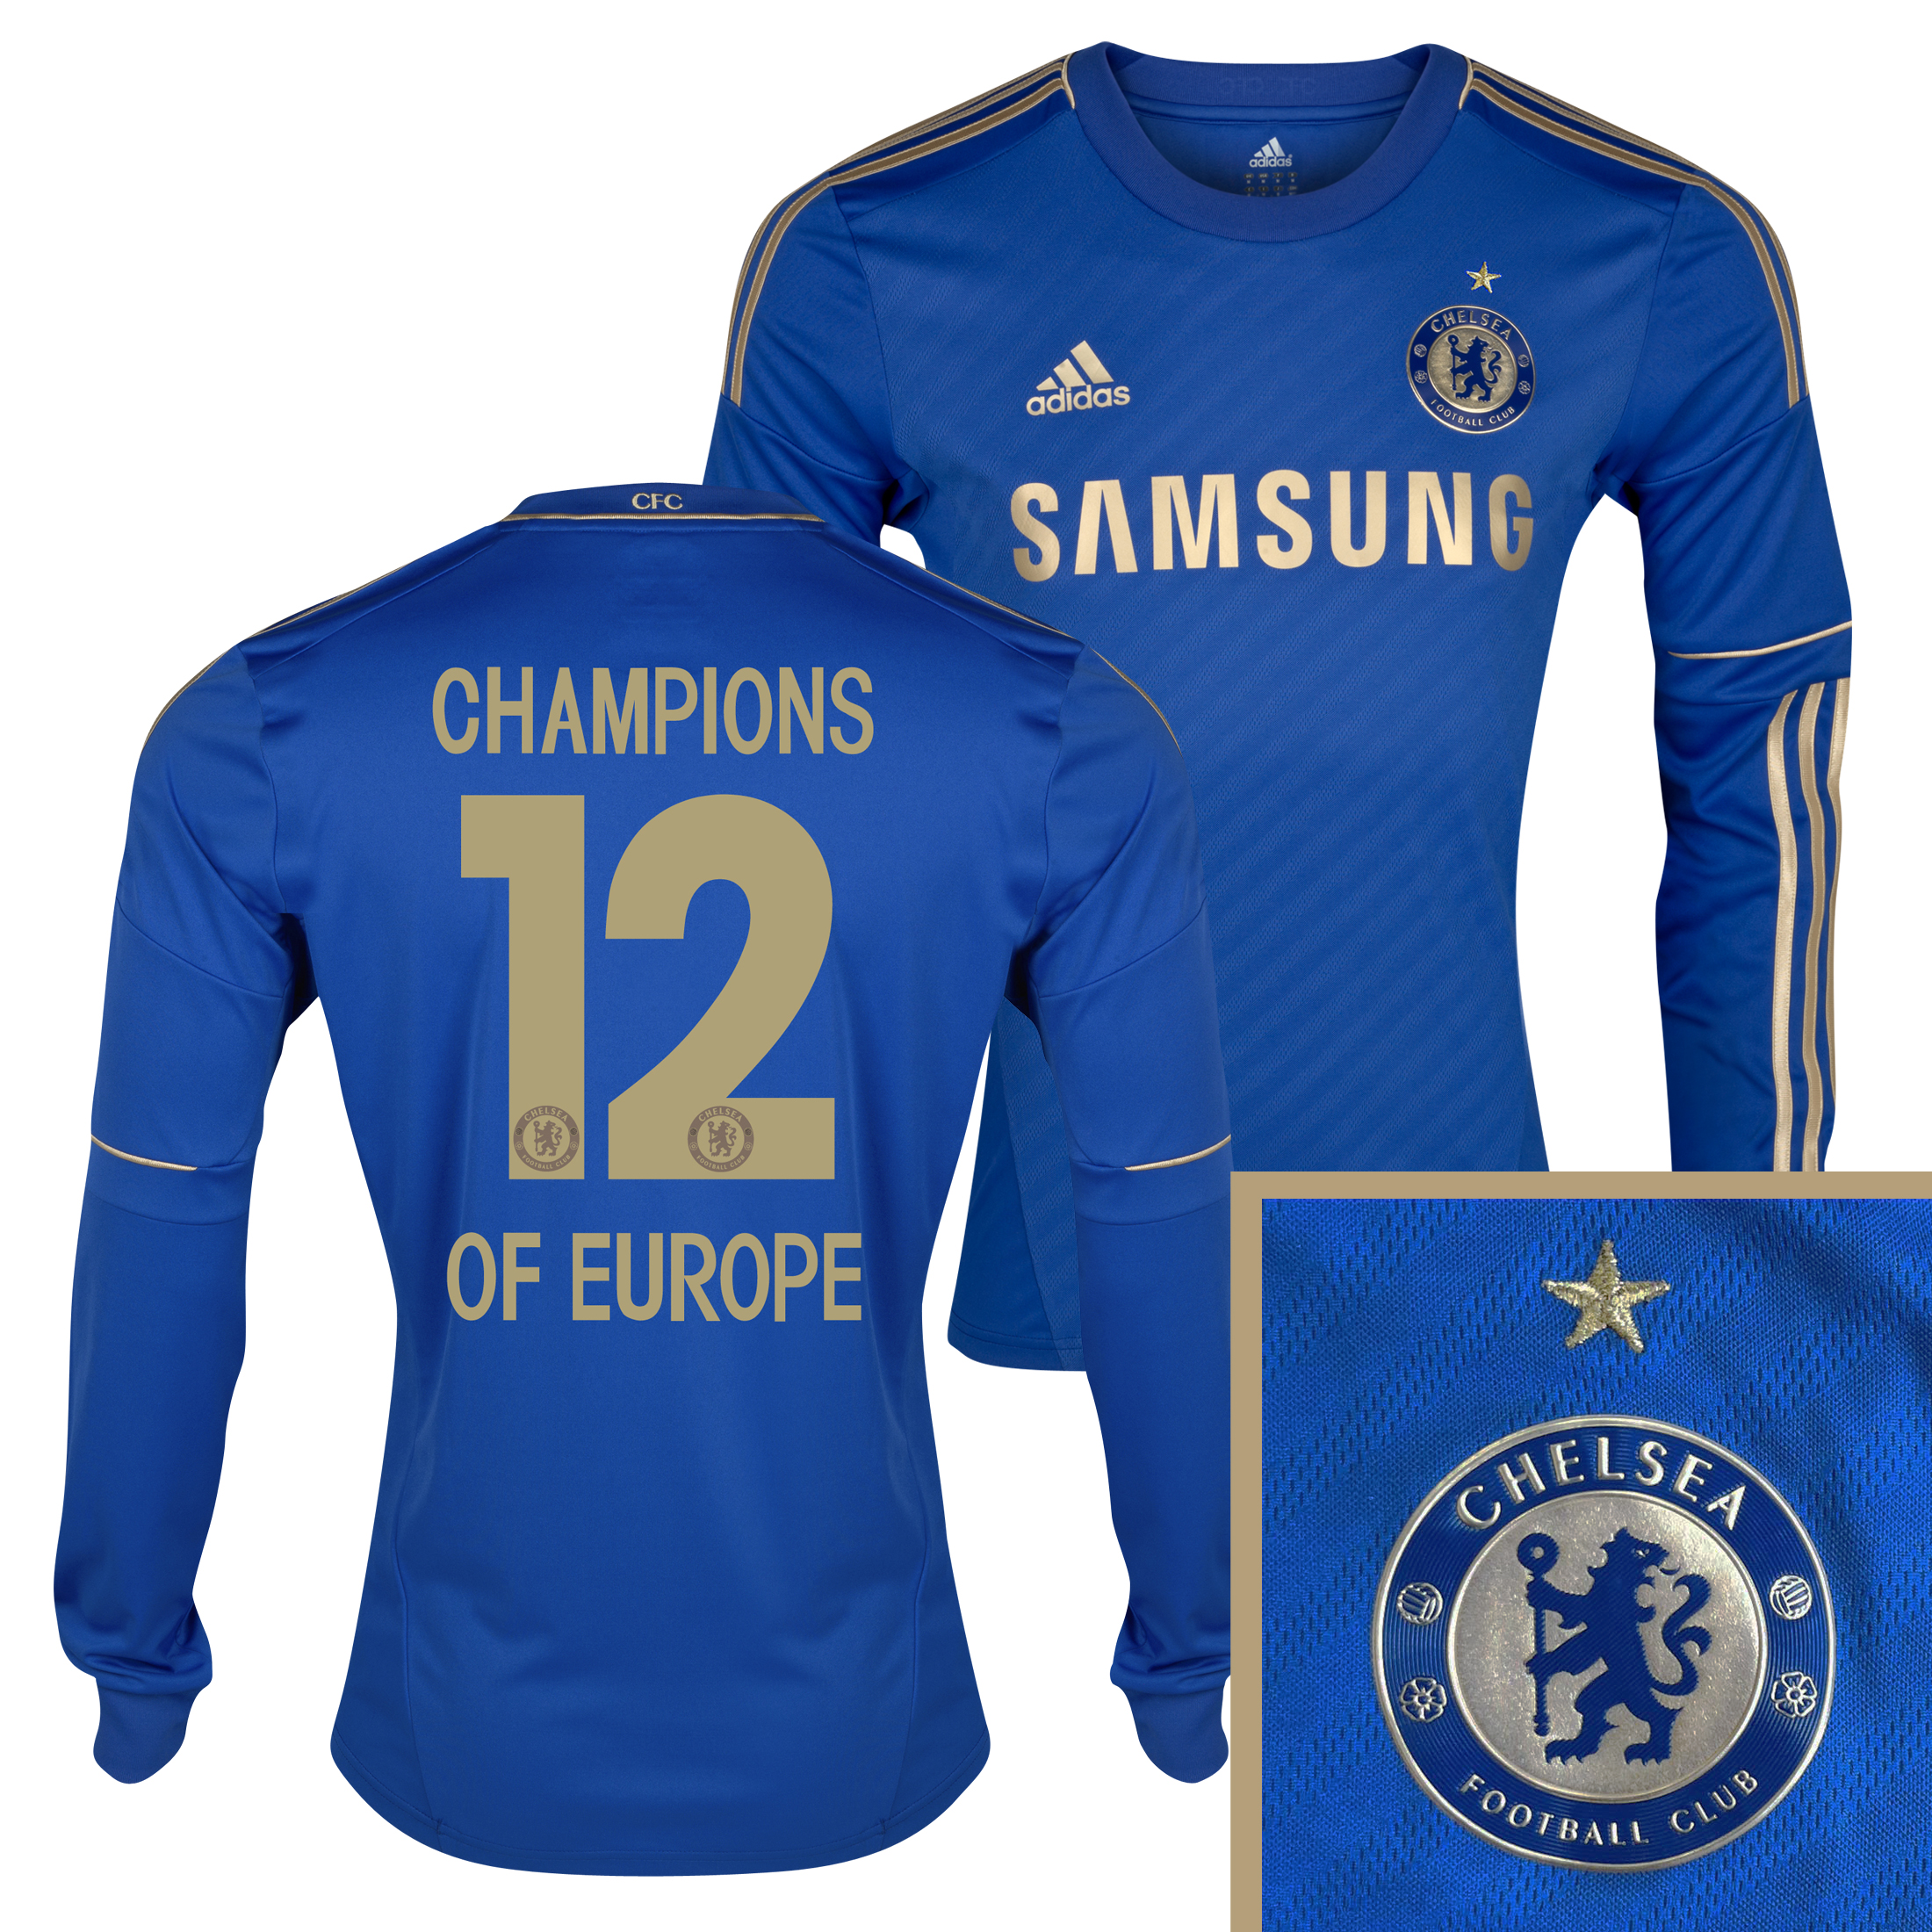 Chelsea Home Shirt 2012/13 - Long Sleeved - Youths with Champions 12 Printing including Gold Star